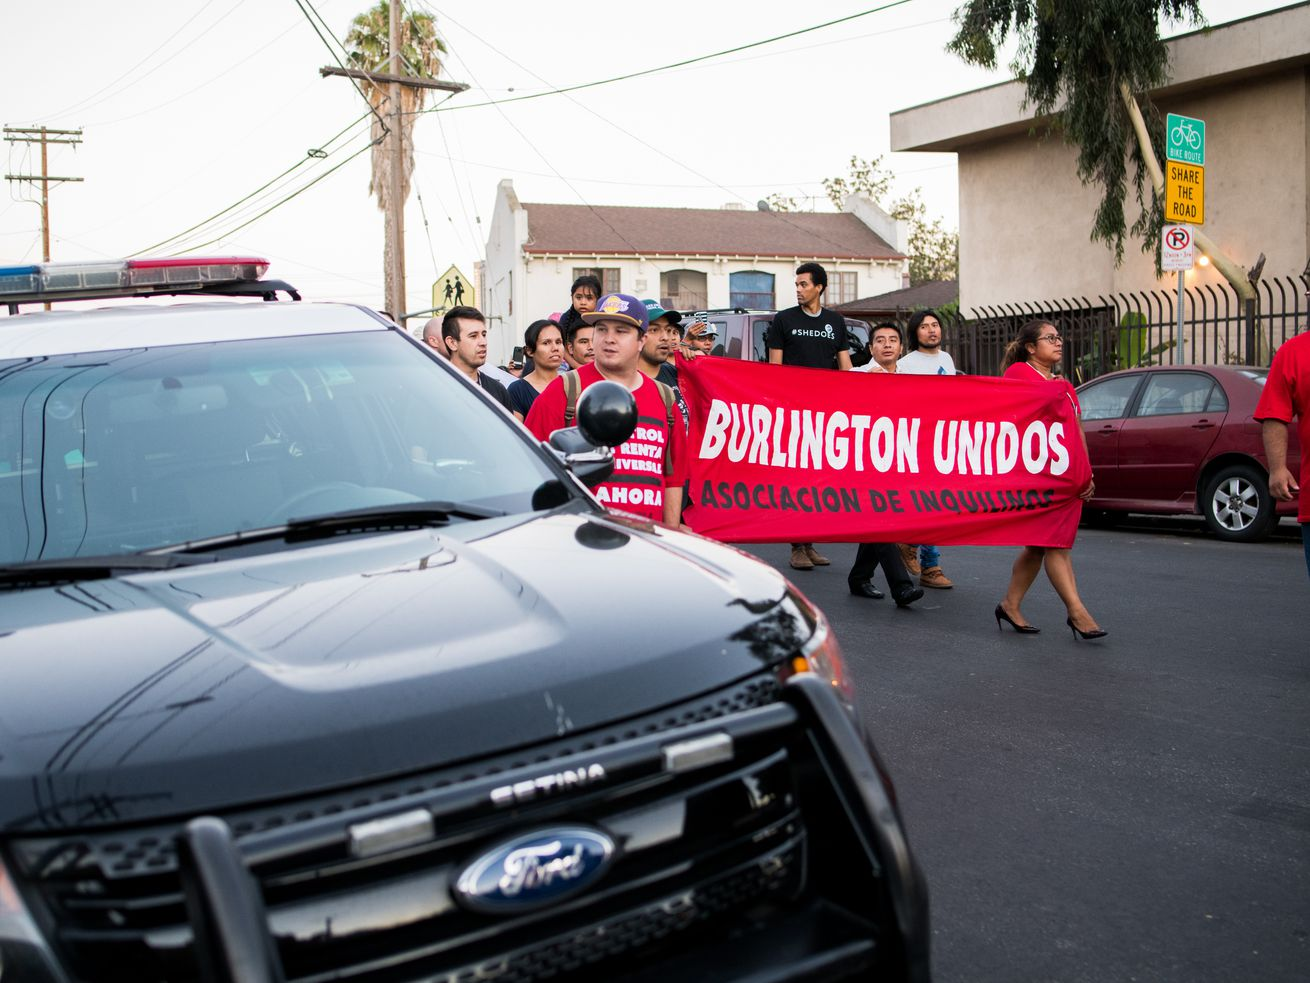 Members of Burlington Unidos protest in front of their Westlake apartments on July 20 as part of an ongoing rent strike.